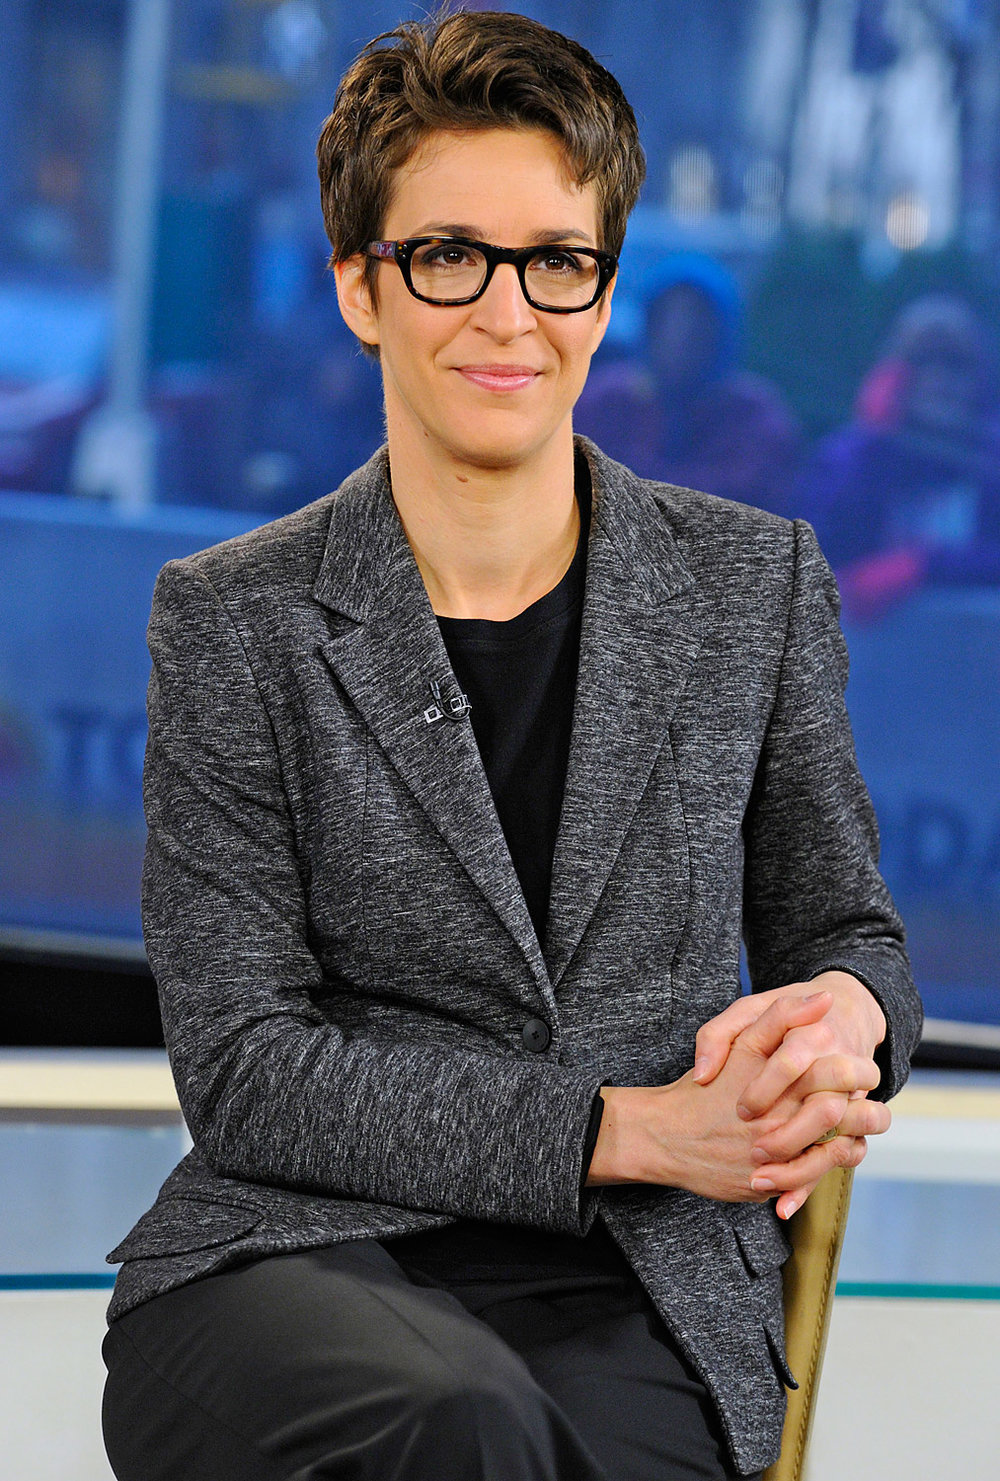 Rachel Maddow - First openly gay anchor on a primetime news show